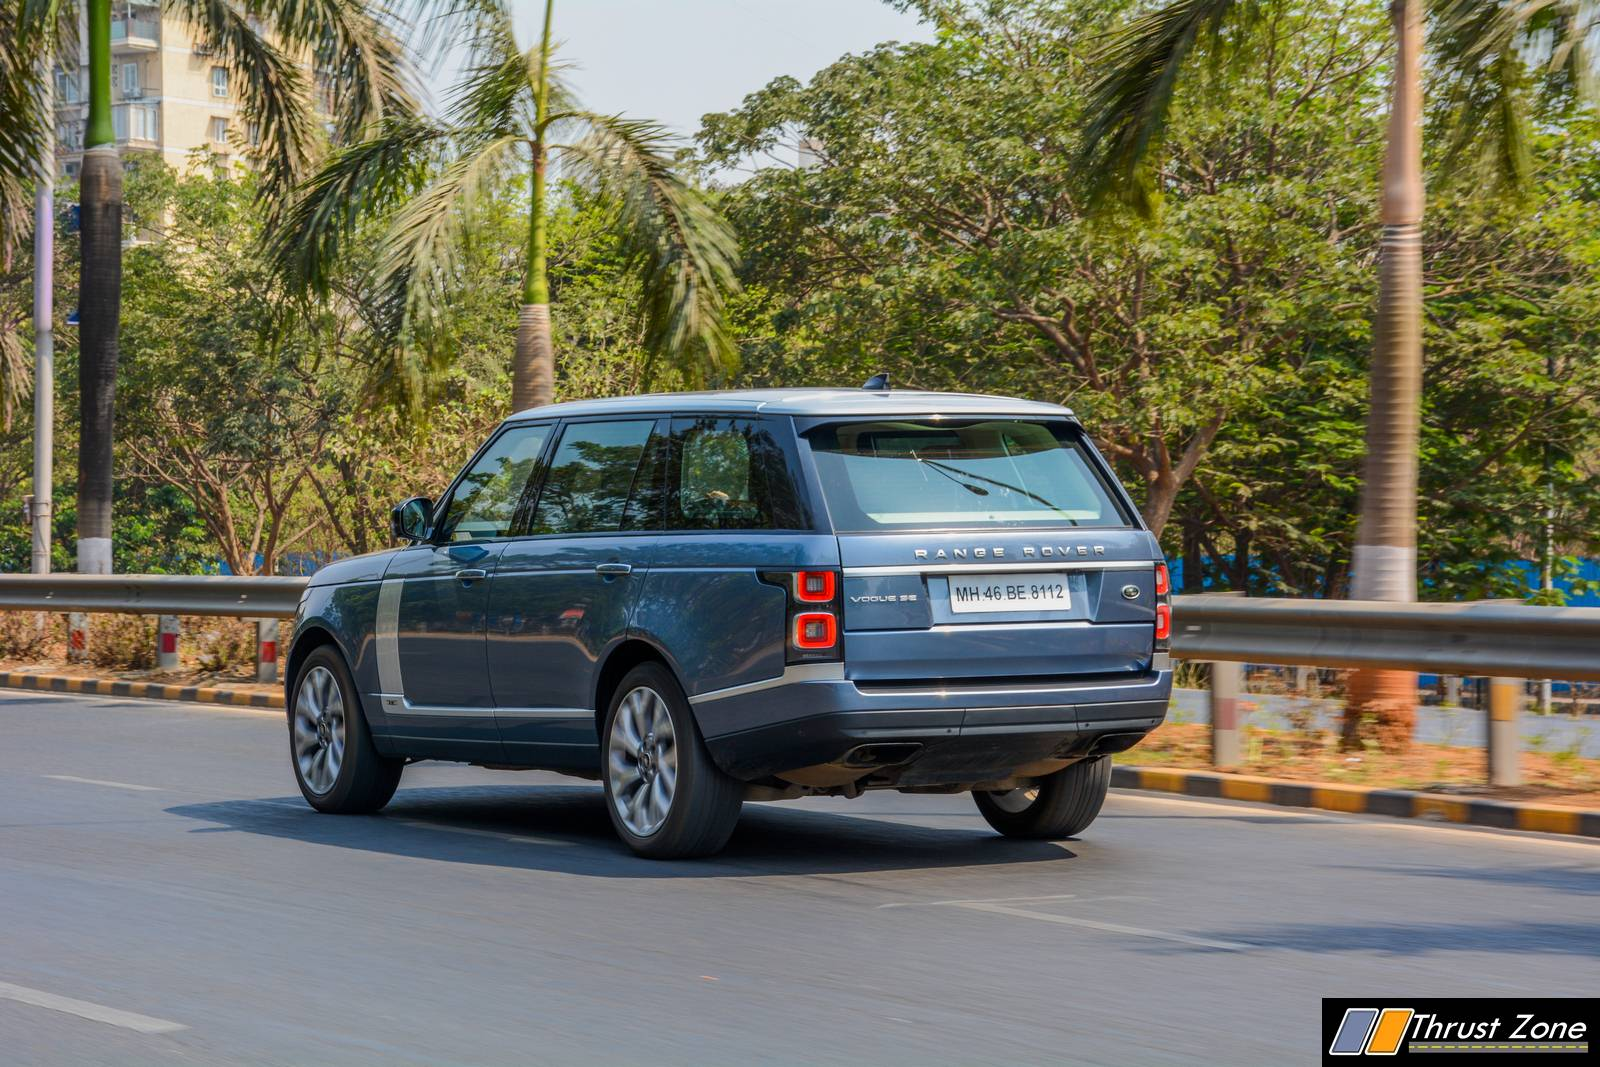 2019 Land Rover Range Rover LWB Facelift Diesel India Review